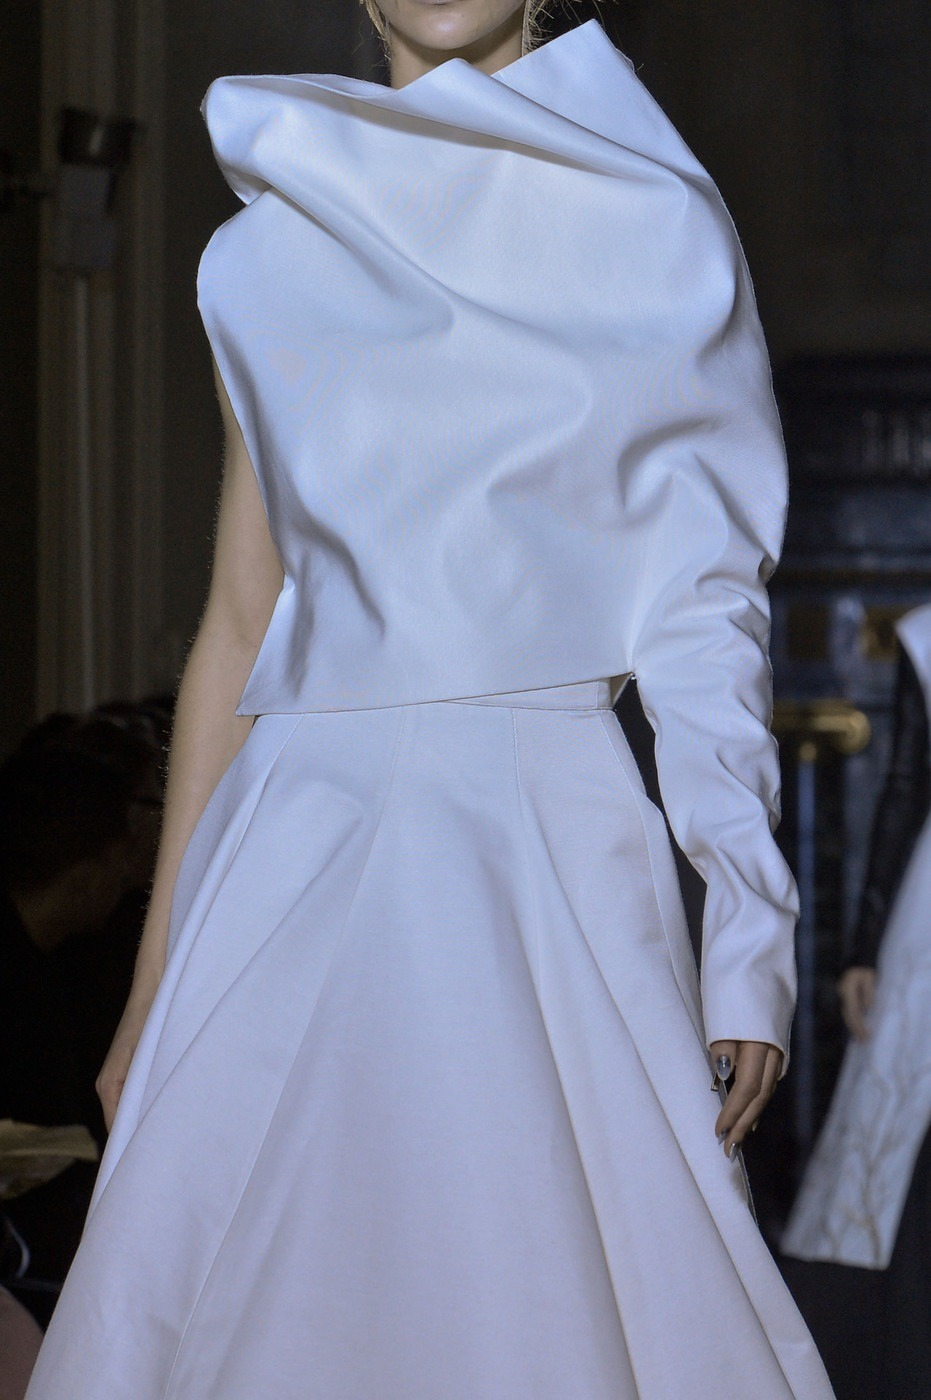 highqualityfashion:   Gareth Pugh FW 13